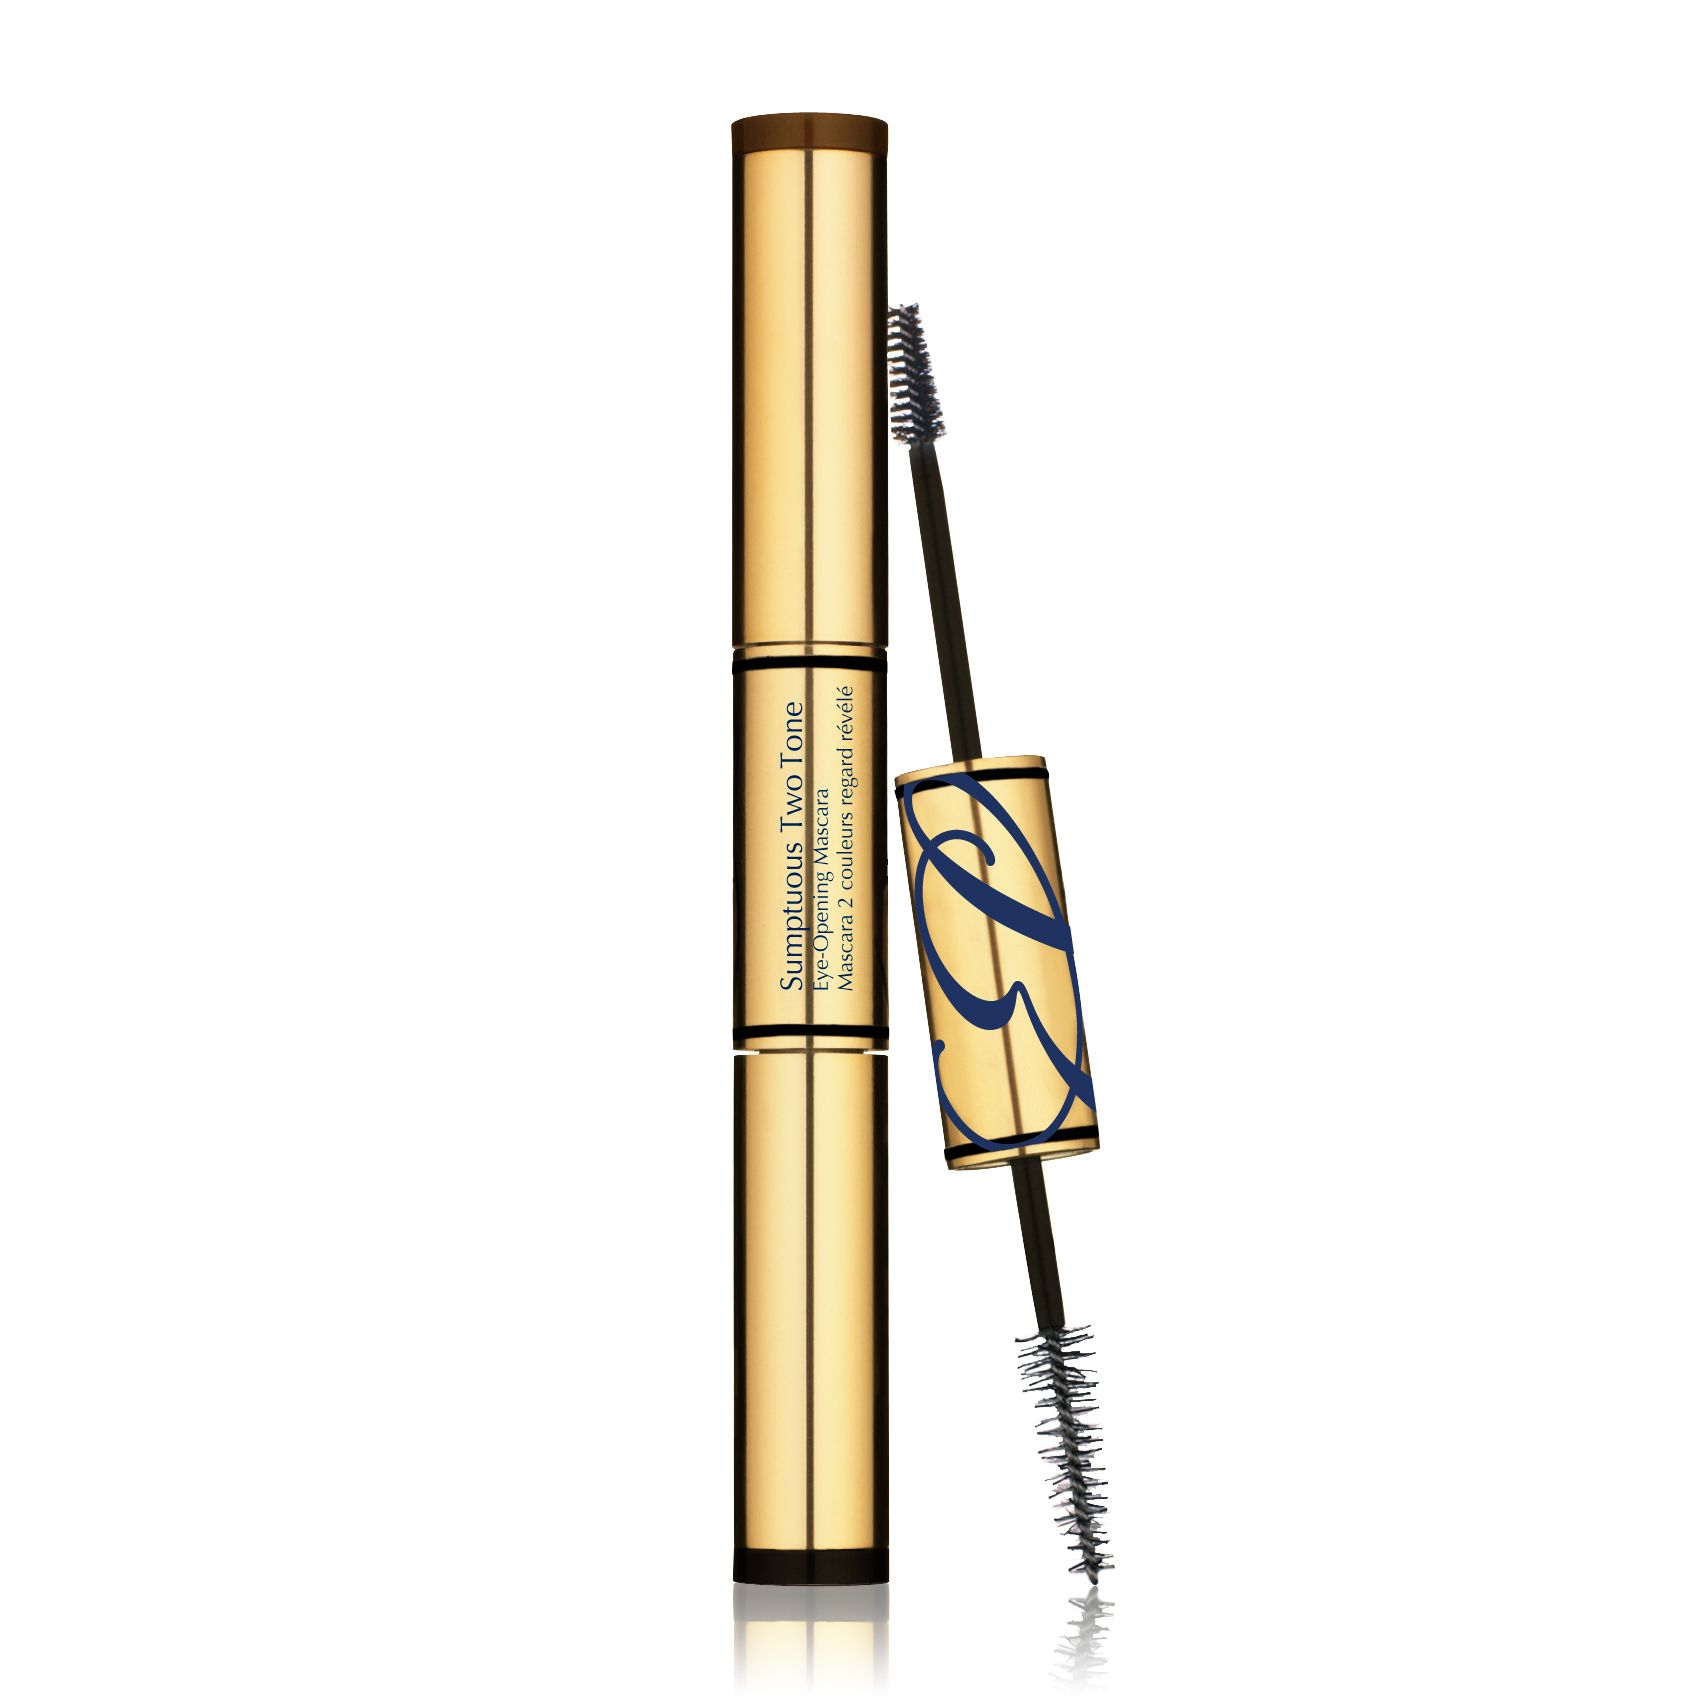 Sumptuous Two Tone Eye-Opening Mascara